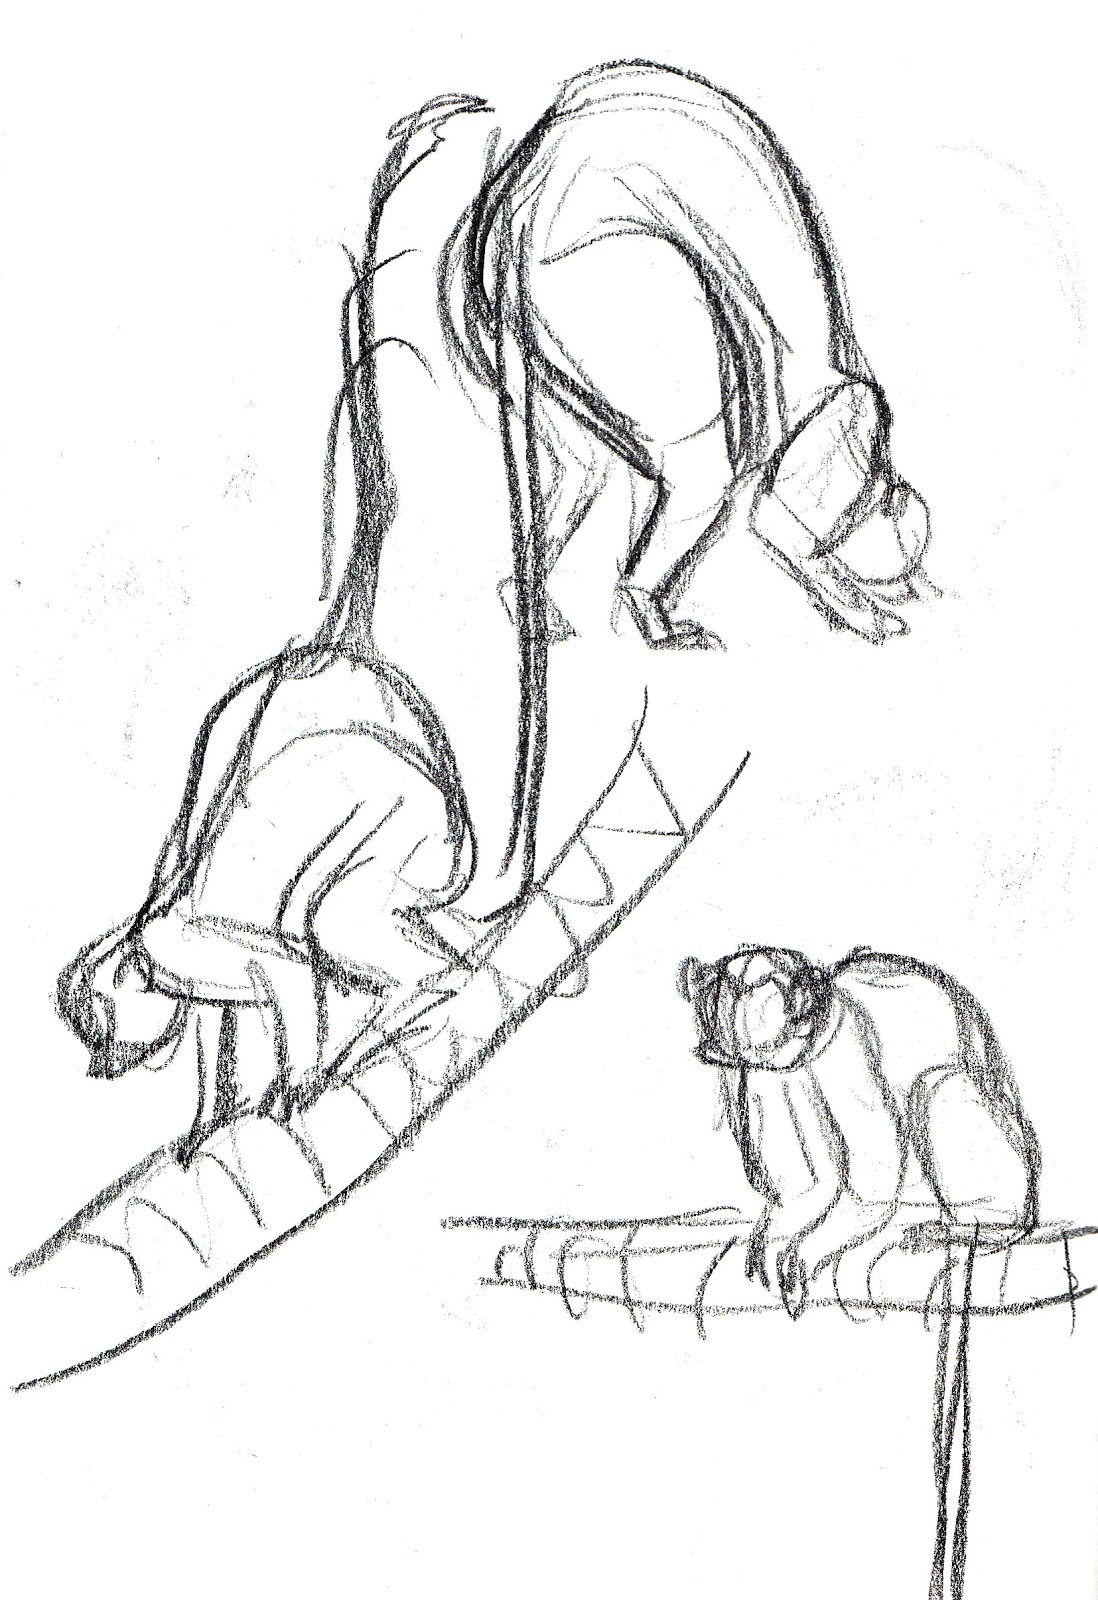 Nicola Coppack's Animation Blog: Monkeys sketches